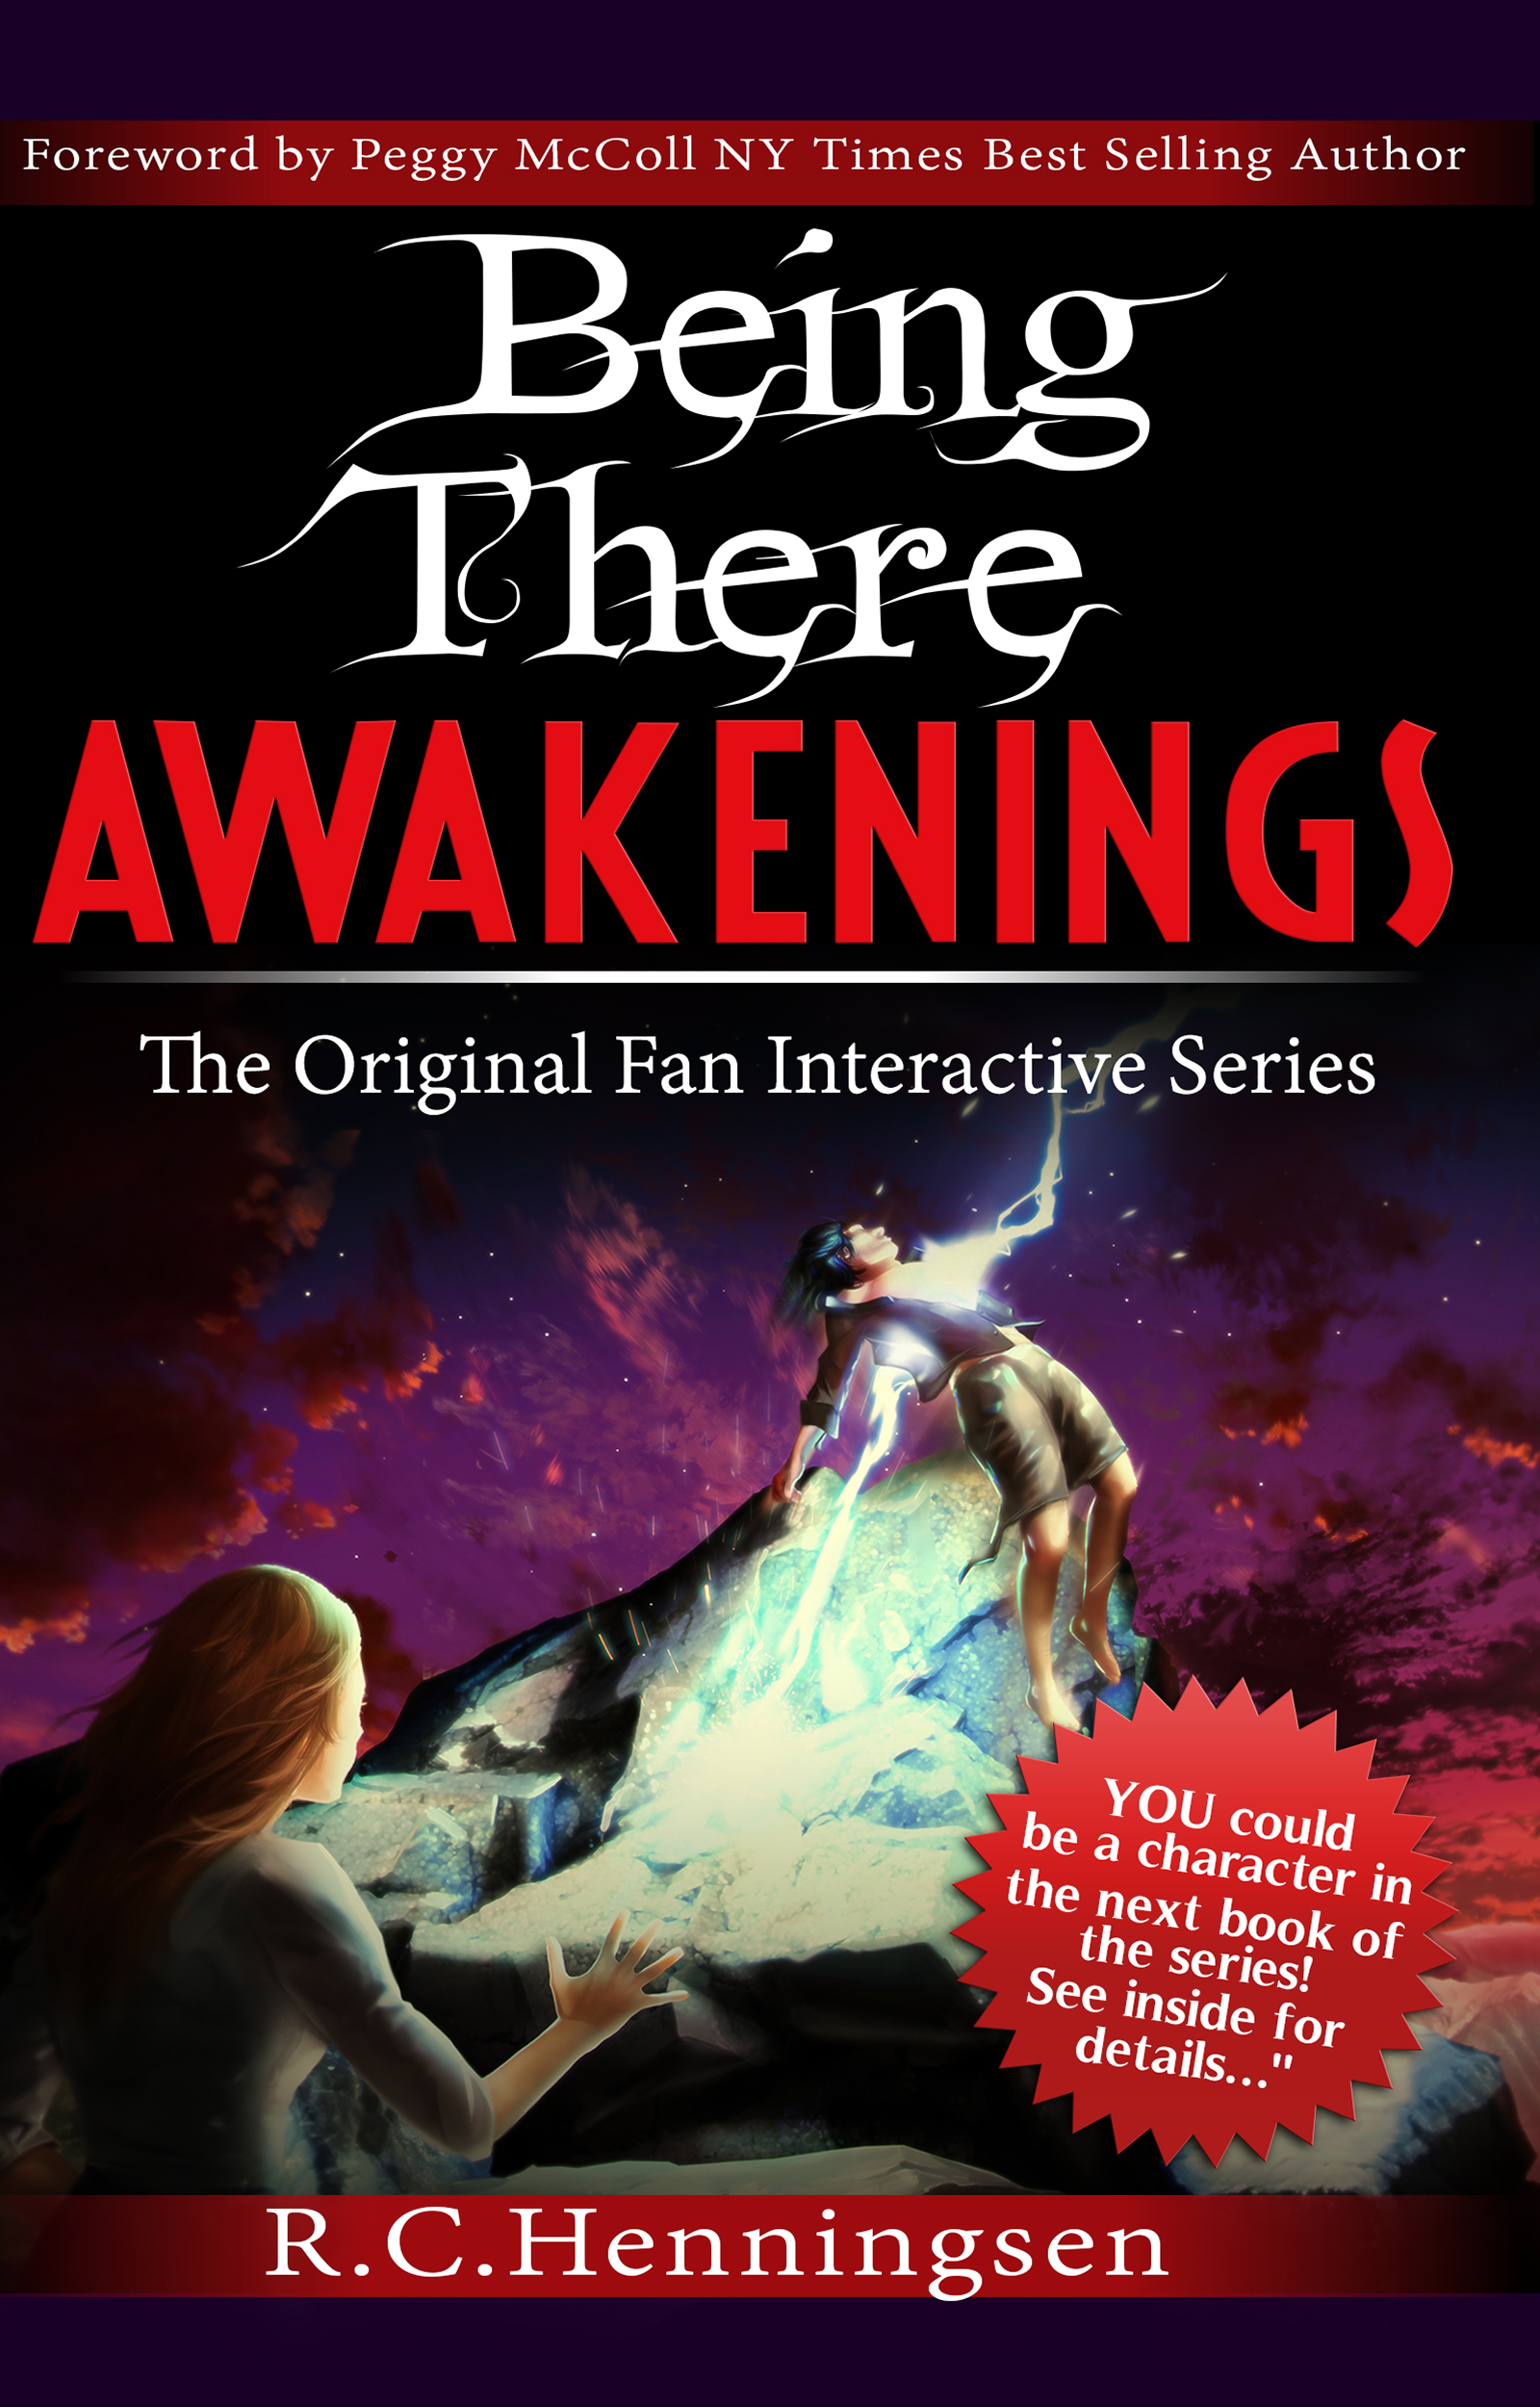 L.I. Author, R.C.Henningsen's  New Age Fan Interactive Series Makes Best Seller Status in Hours